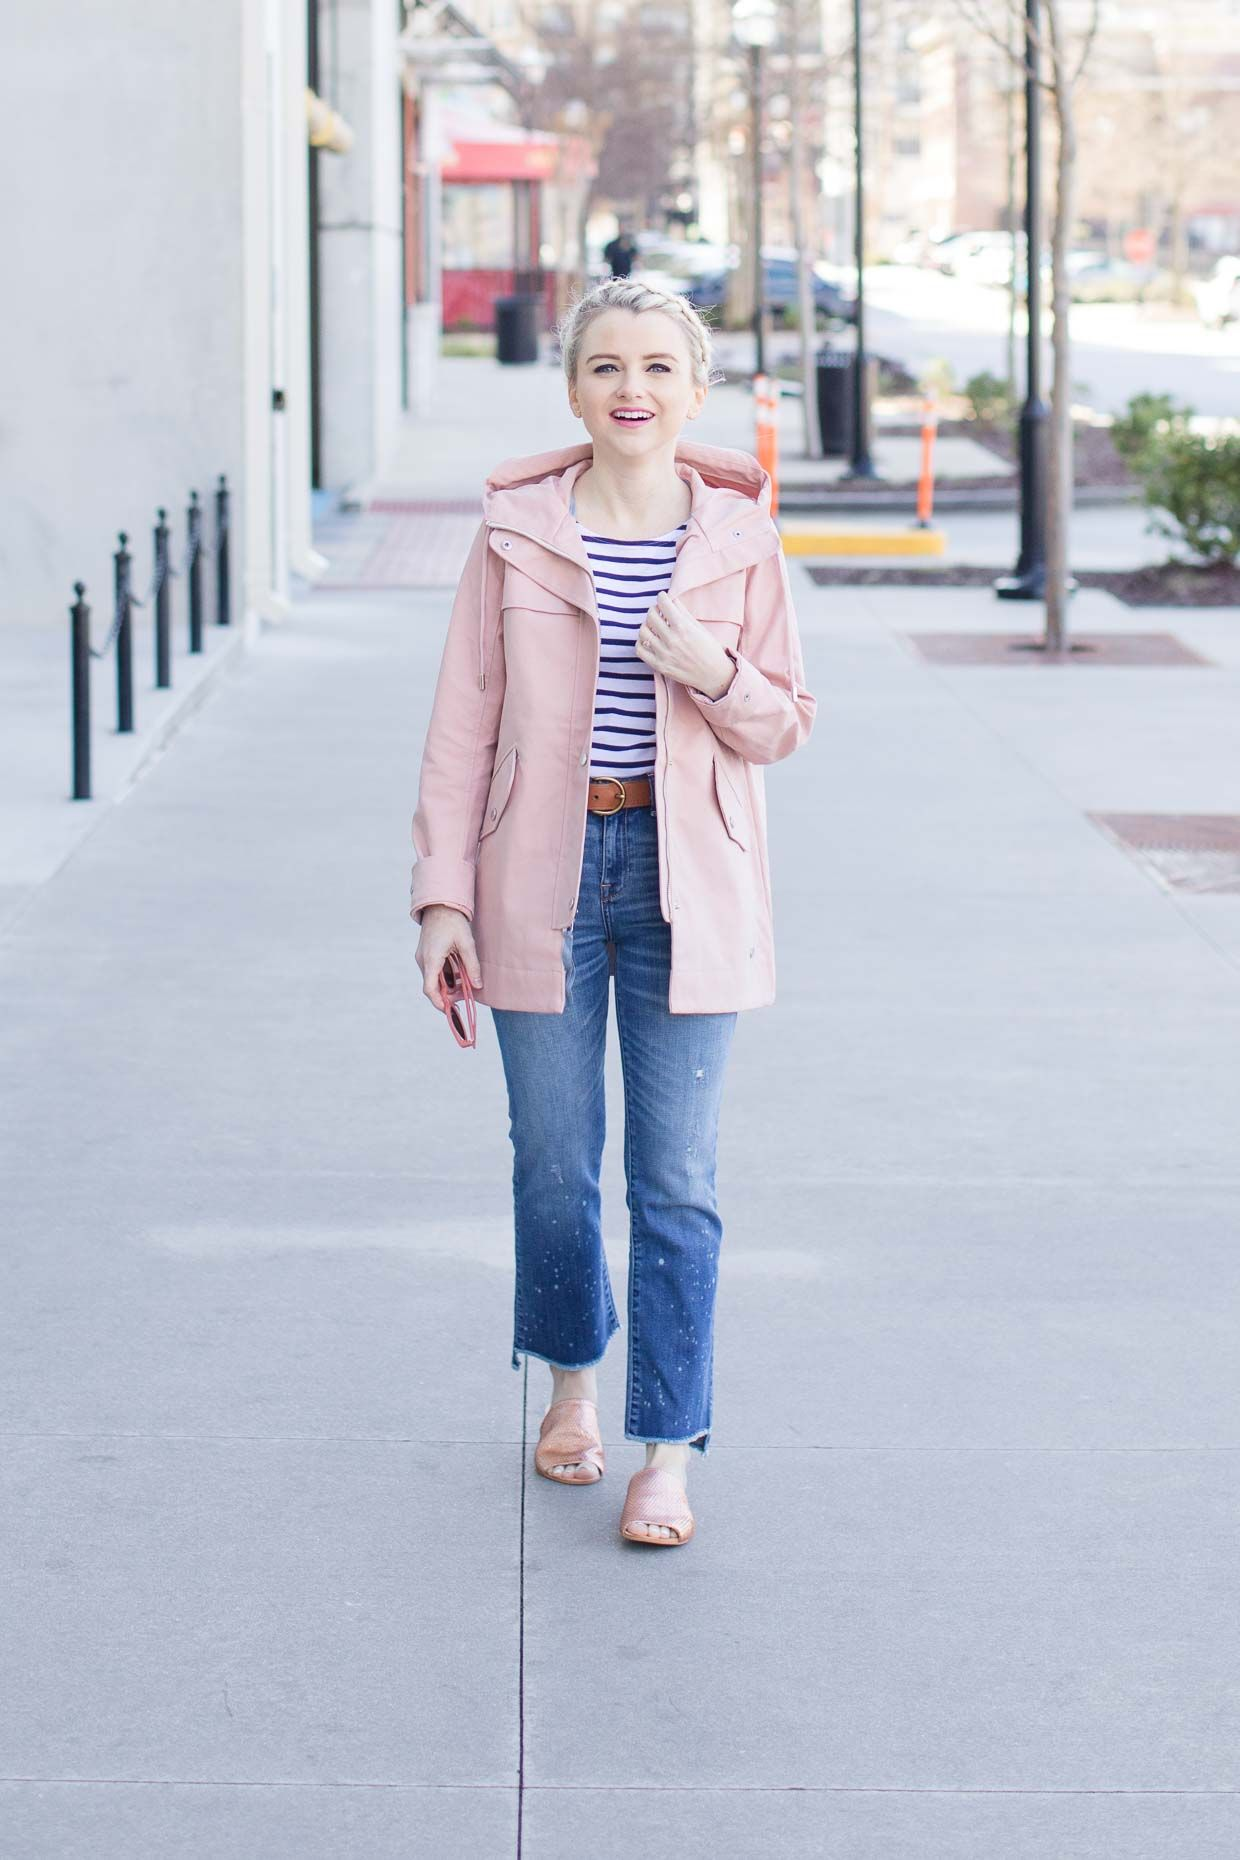 White and navy striped tee+straight cropped jeans+blush slides+blush  raincoat+sunglasses. Spring Casual Outfit 2017